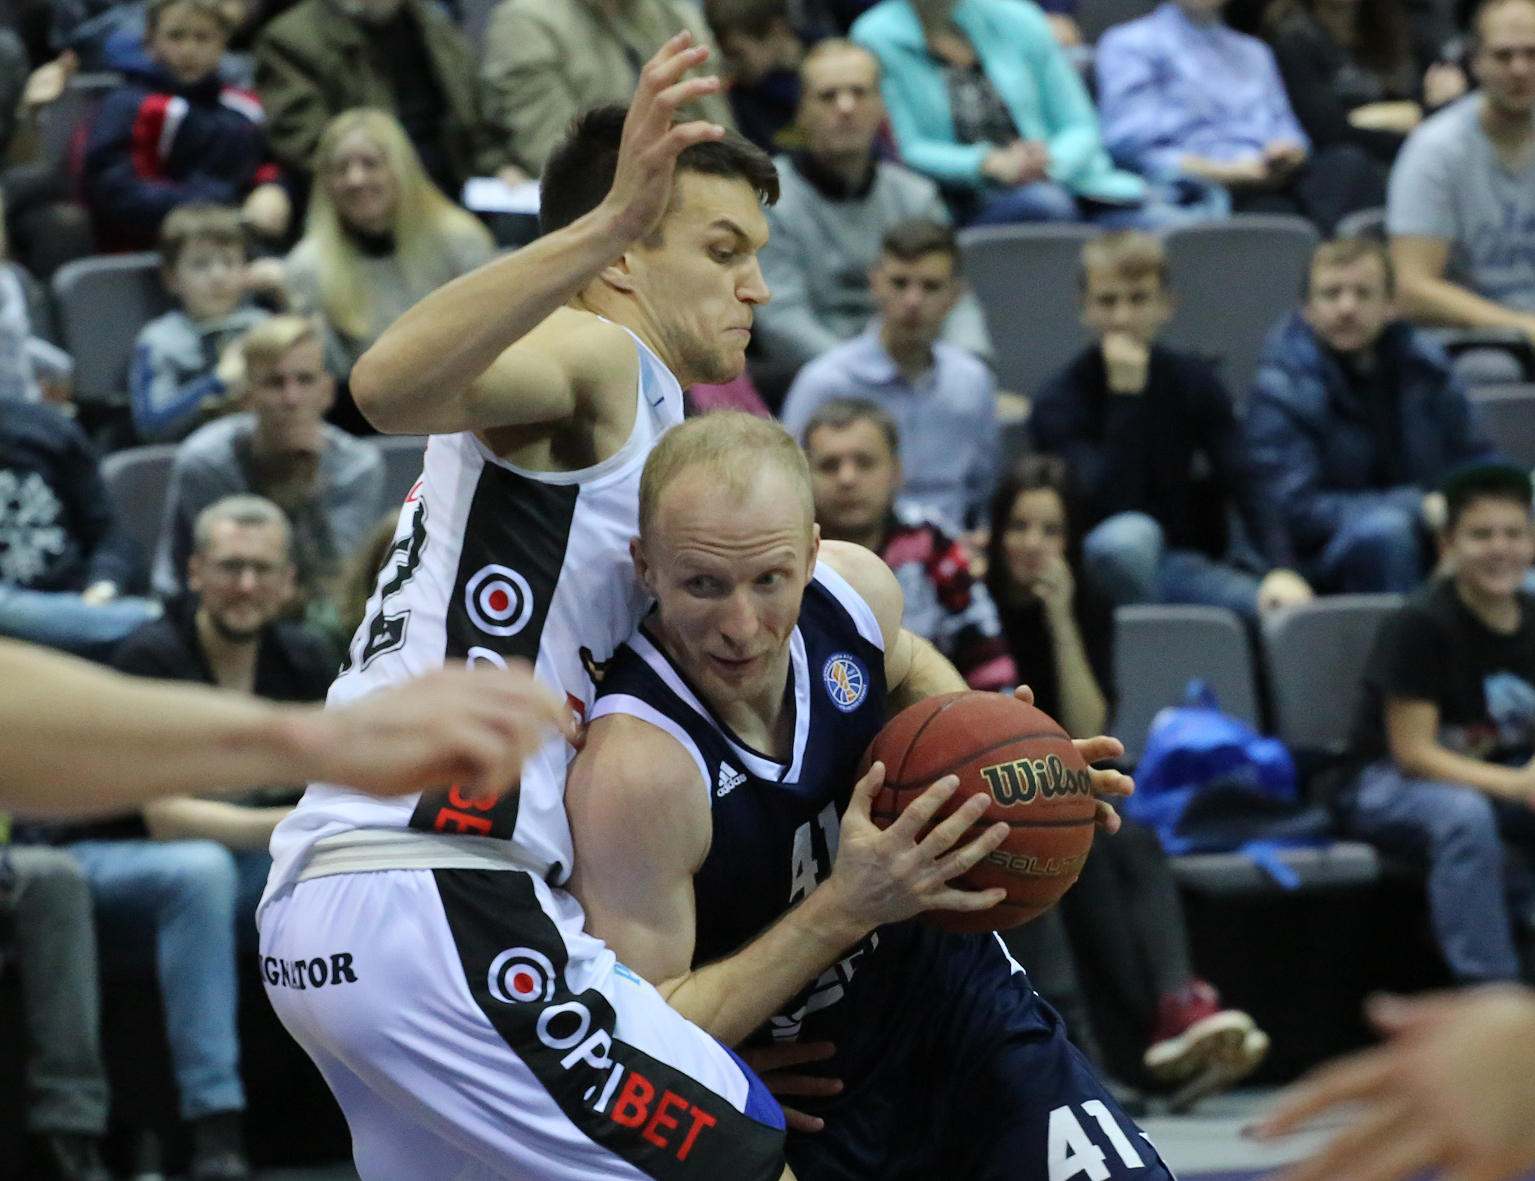 Dragons Defeat Kalev In Minsk